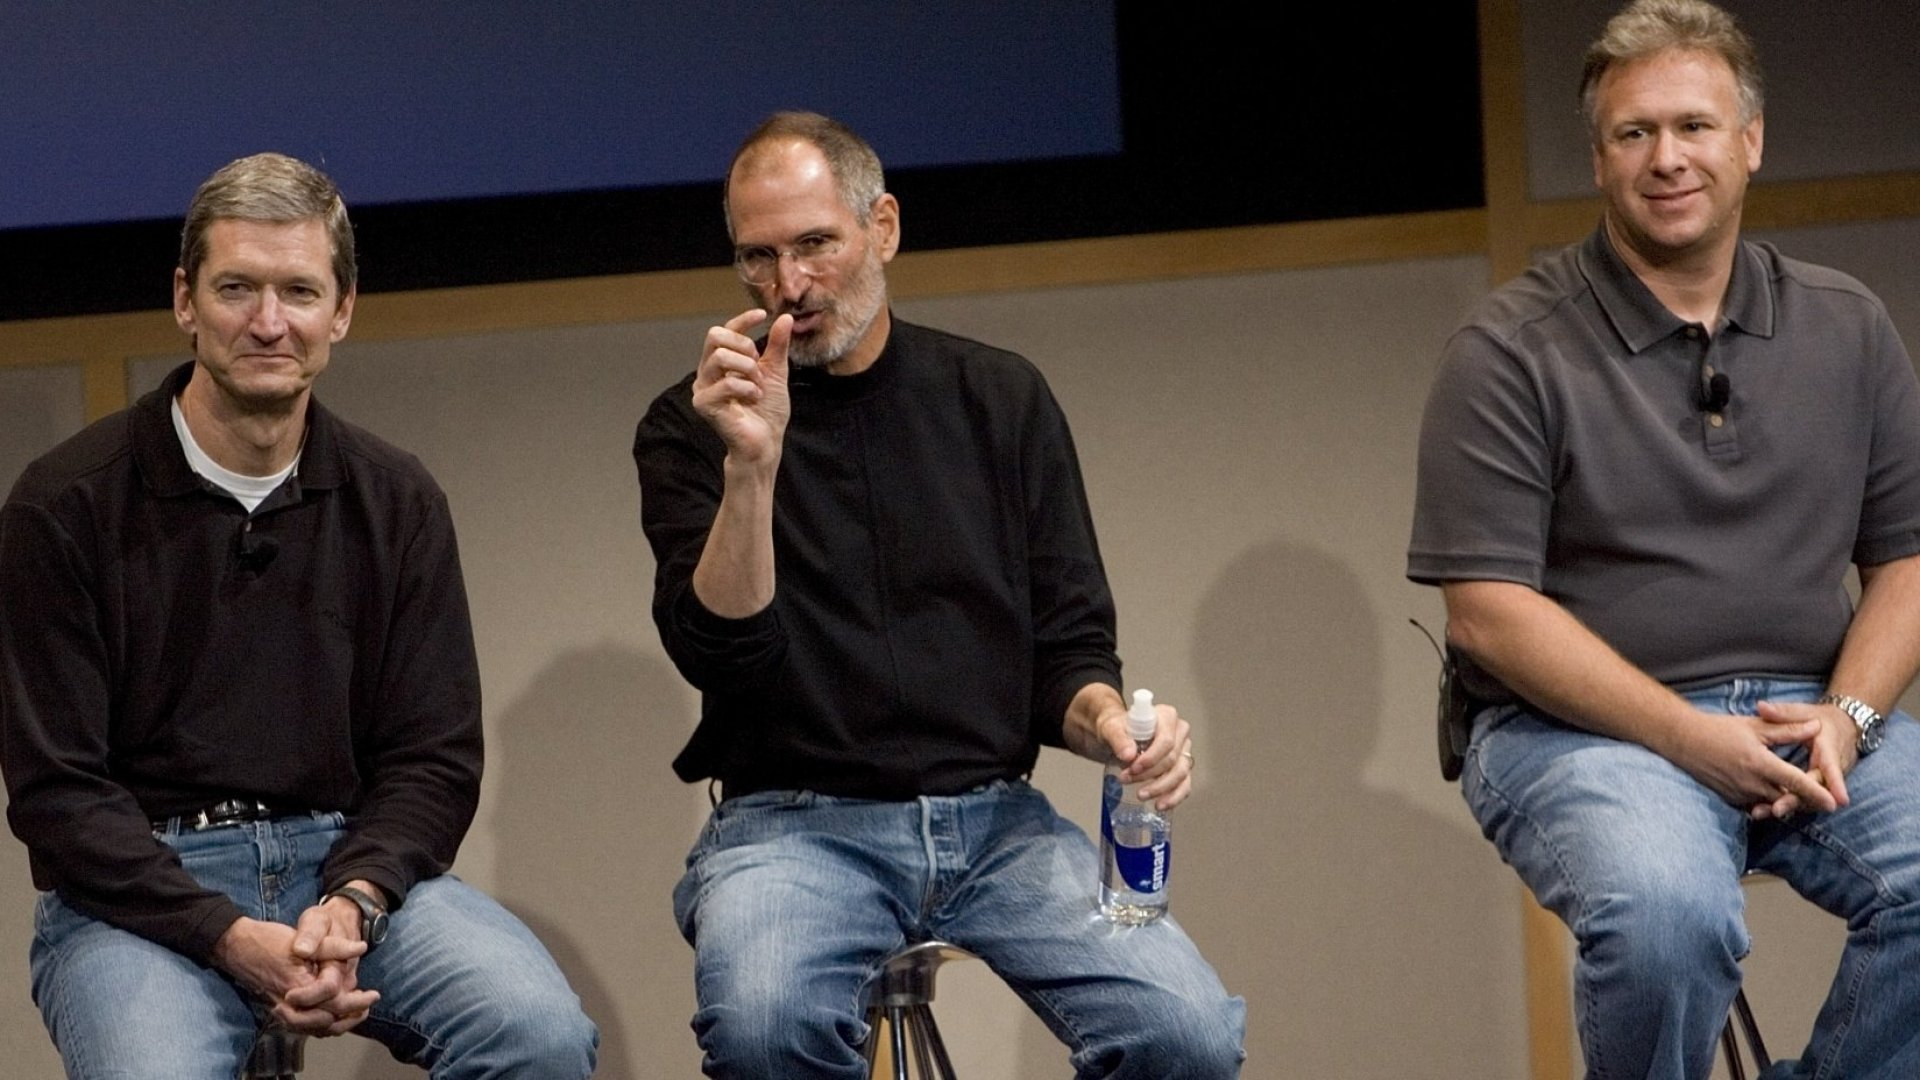 The Single Biggest Reason People Wanted to Work With Steve Jobs